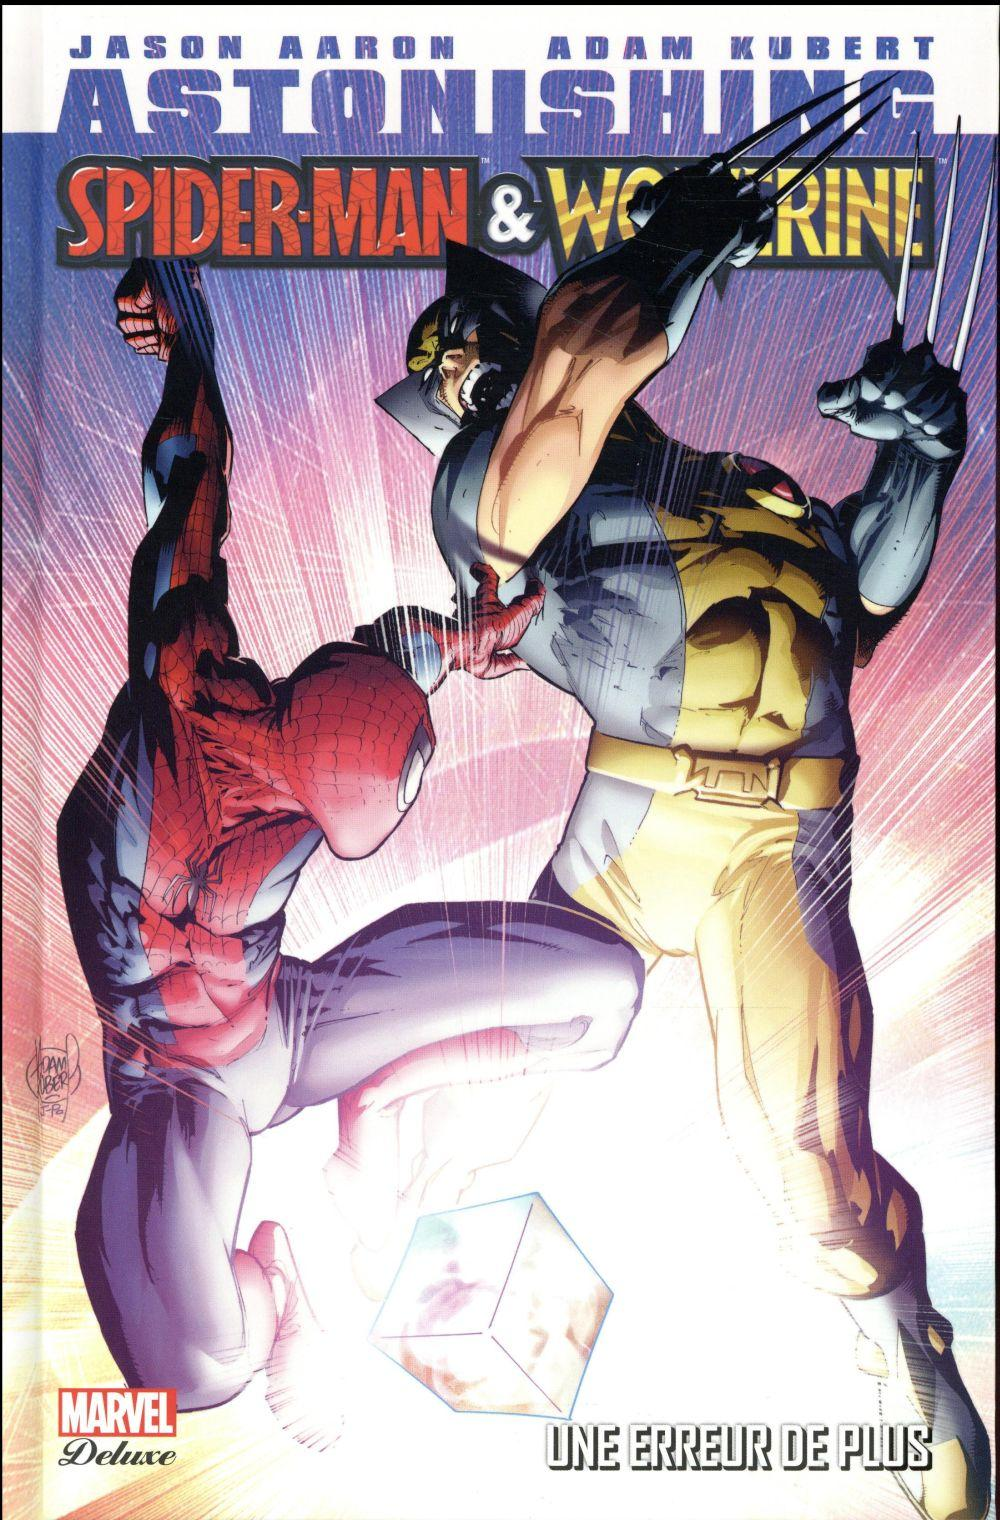 Astonishing Spider-Man & Wolverine ; une erreur de plus  - Jason Aaron  - Adam Kubert